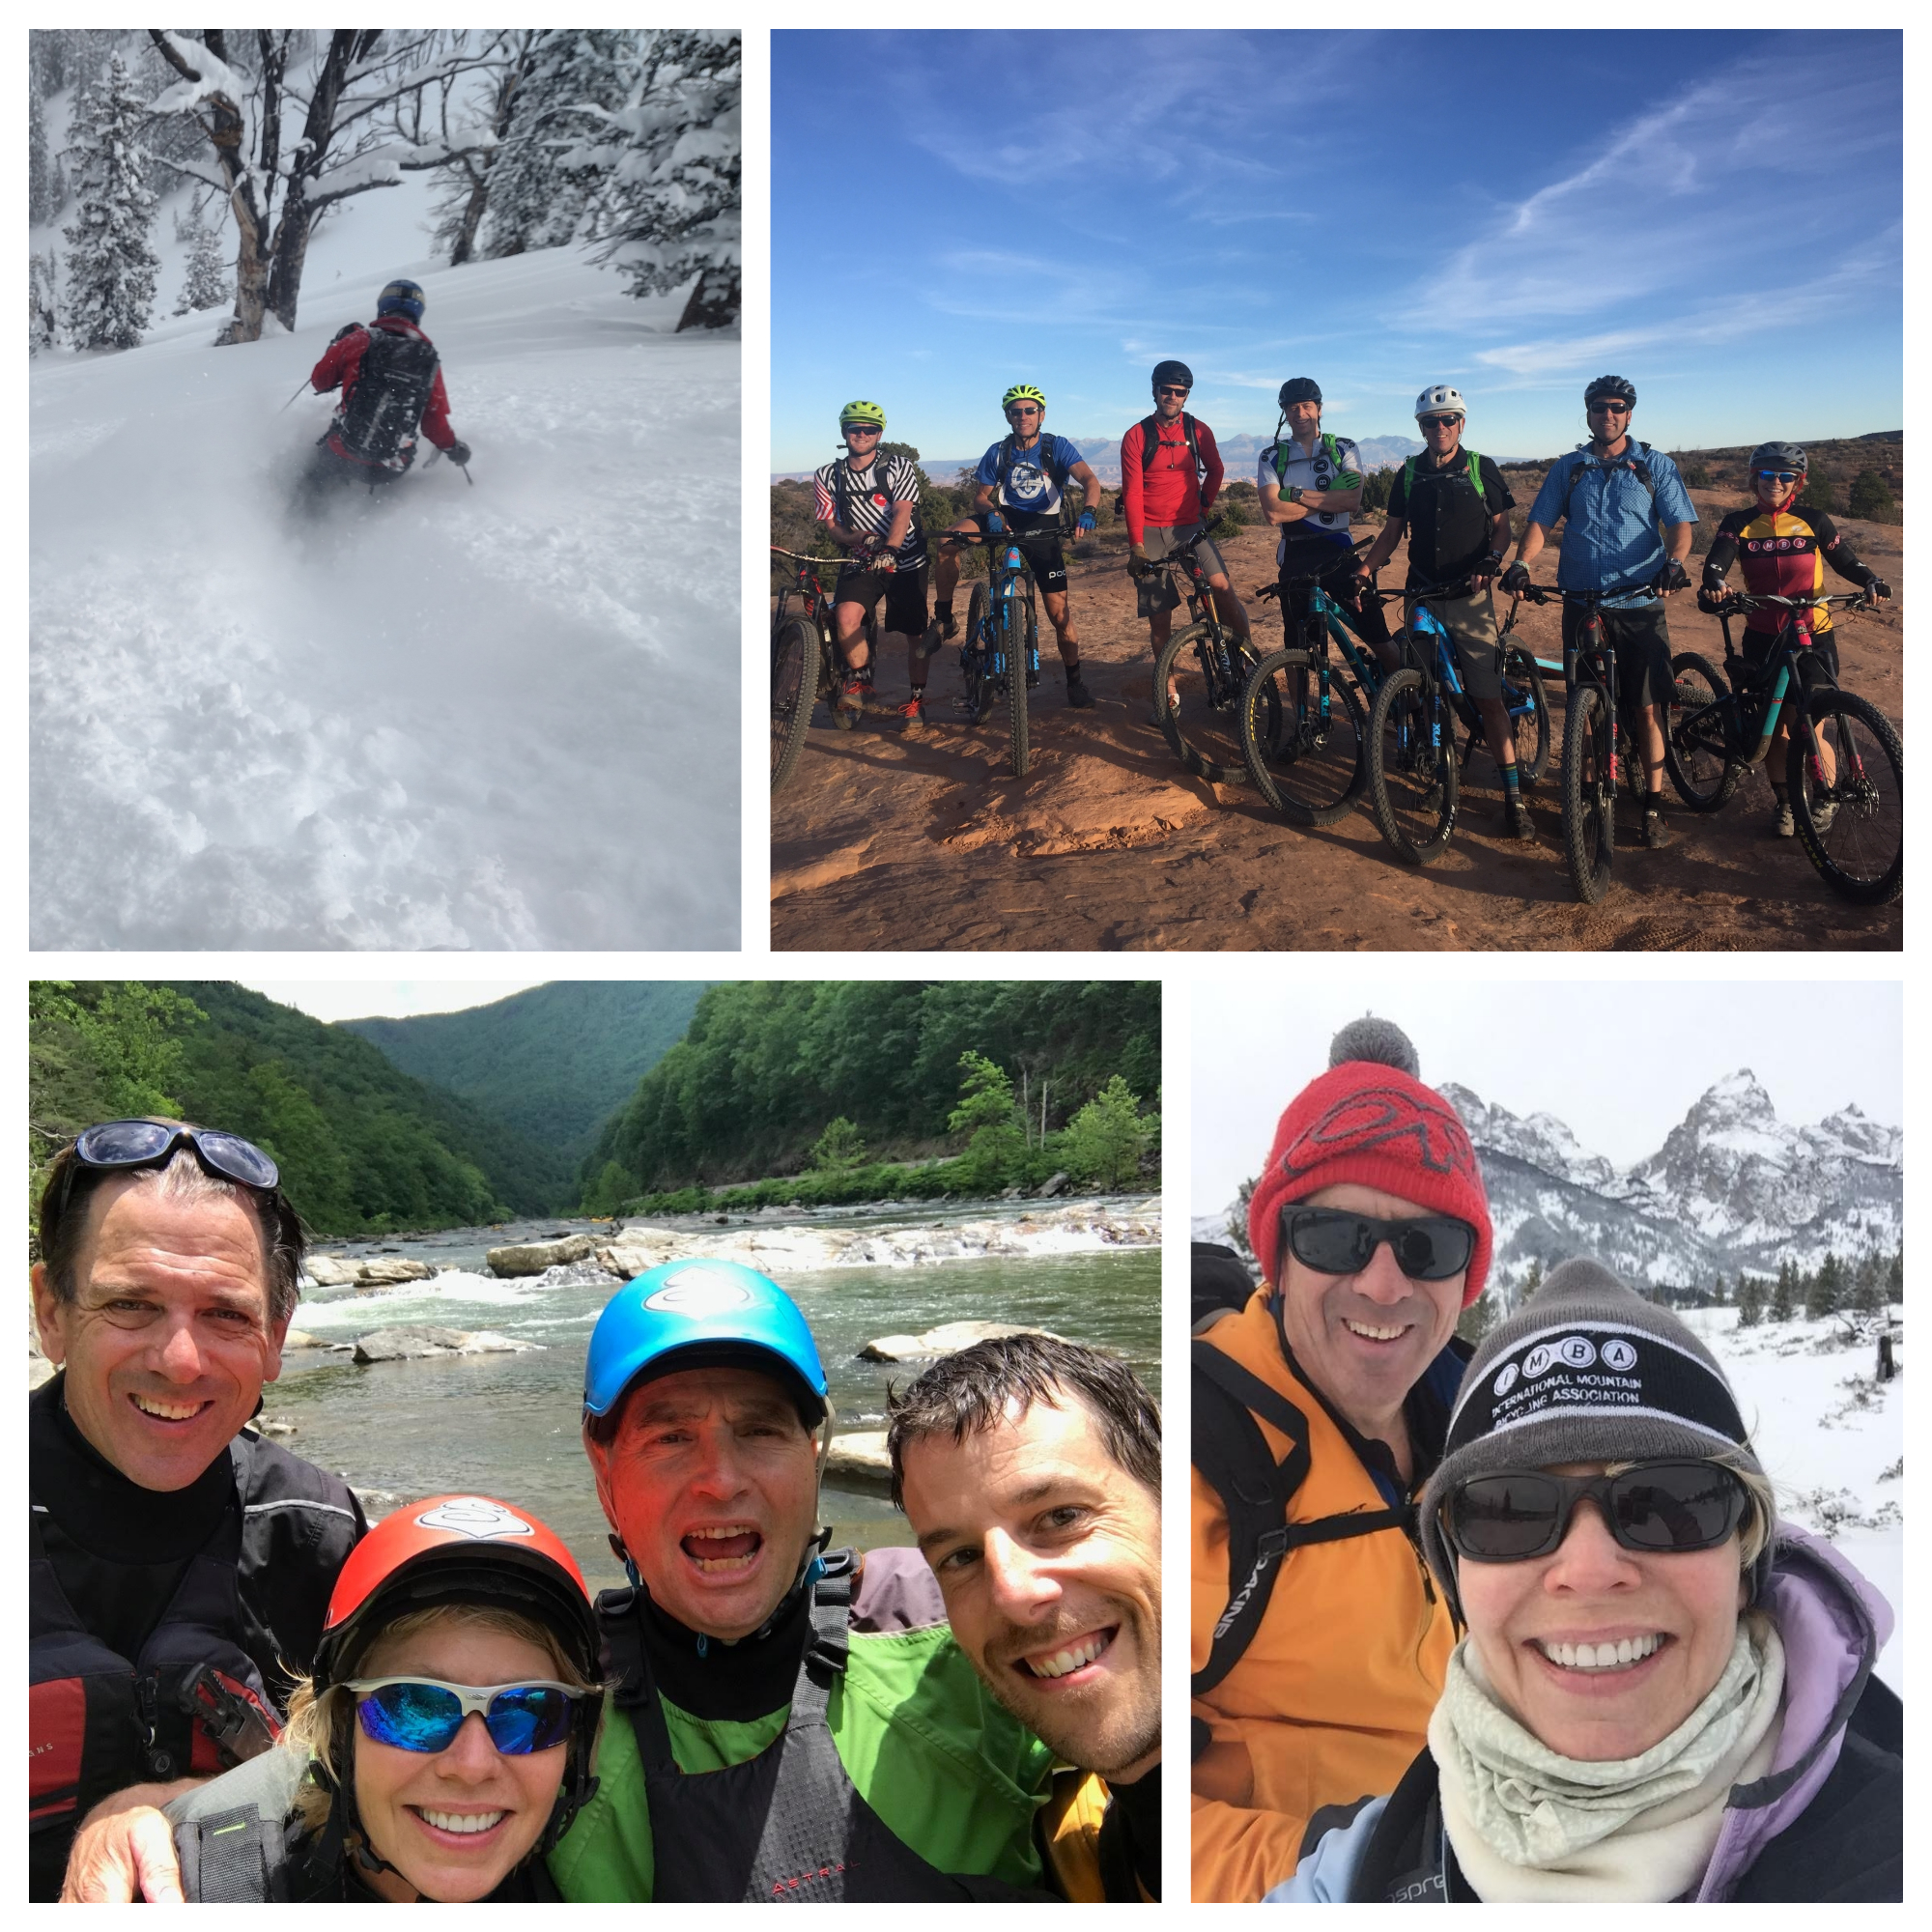 L-R: Shadow Peak, GTNP, Moab riding with friends, paddling the Nolichucky River, NC, enjoying the winter.